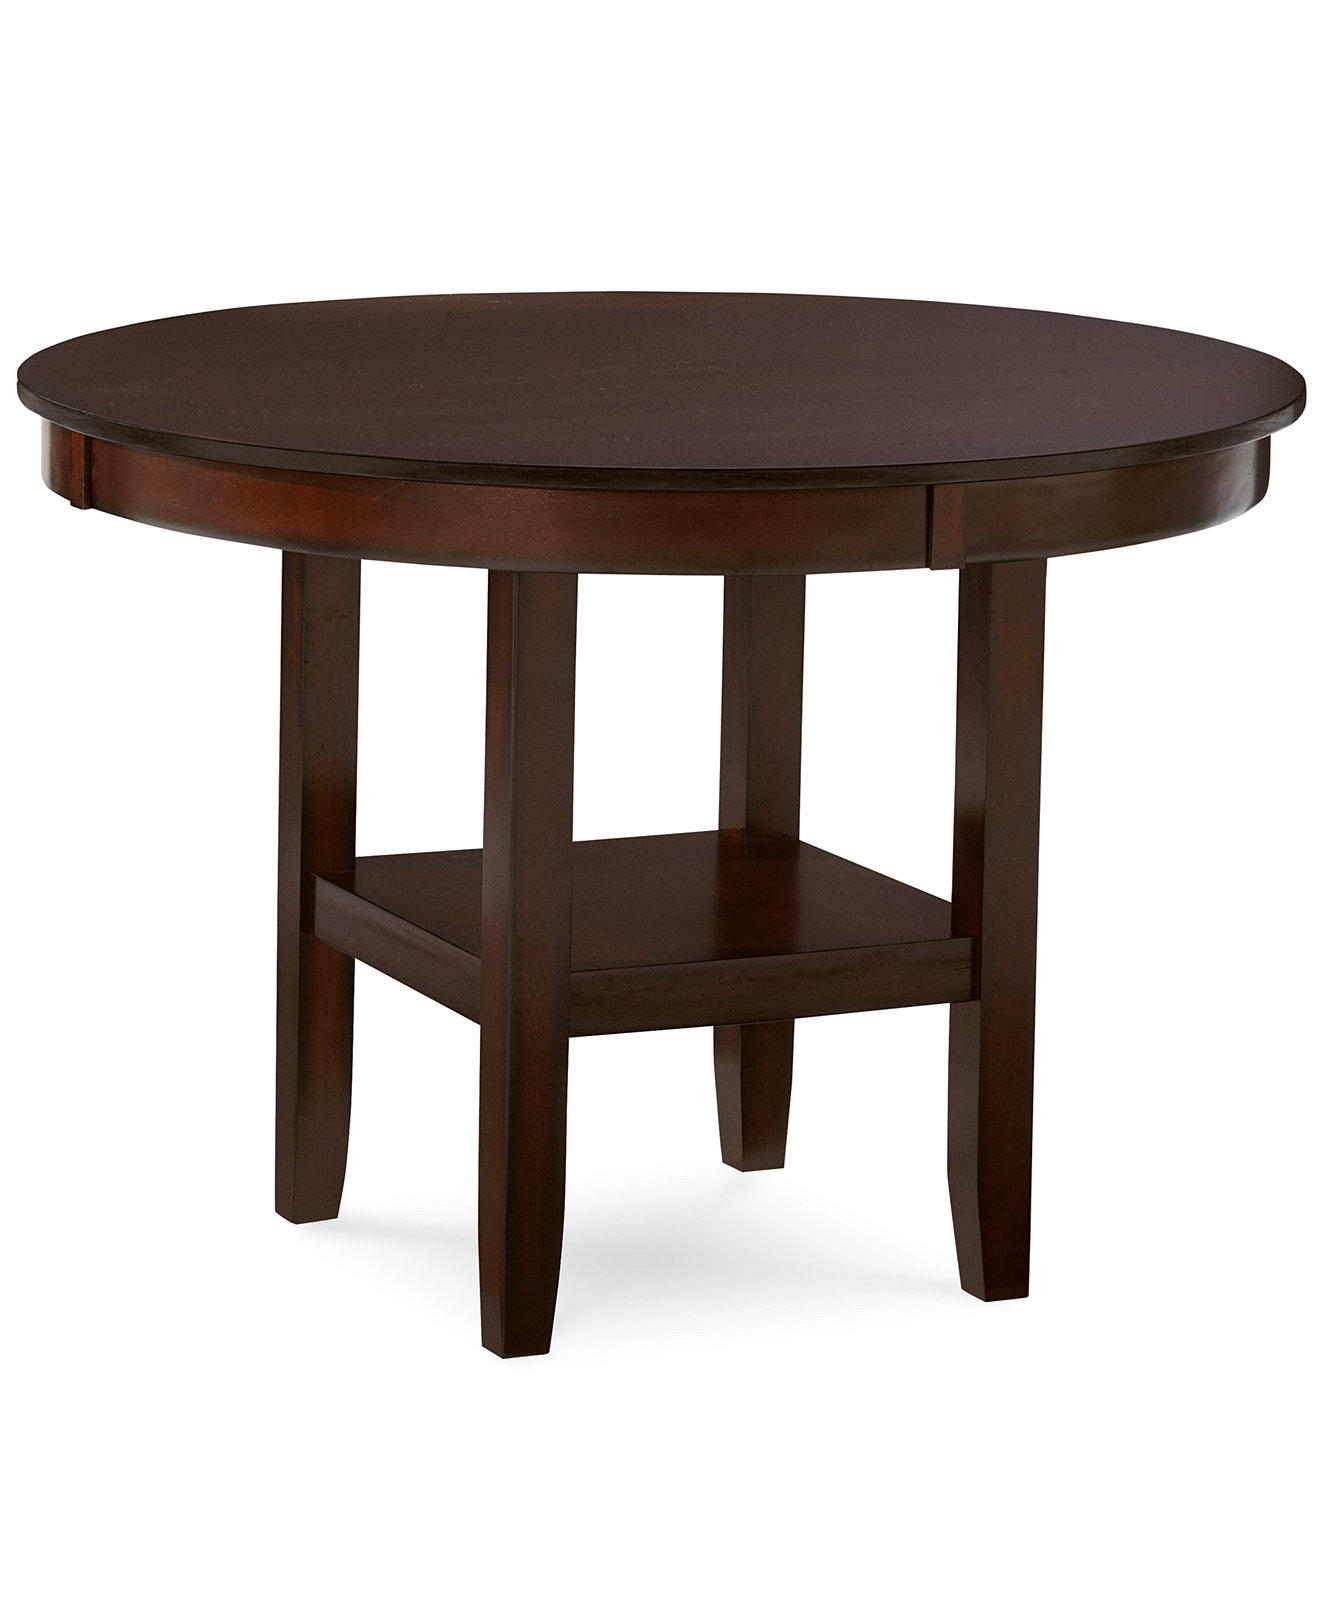 Branton Round Dining Table from Macys : fullsize from wanelo.com size 1320 x 1616 jpeg 100kB